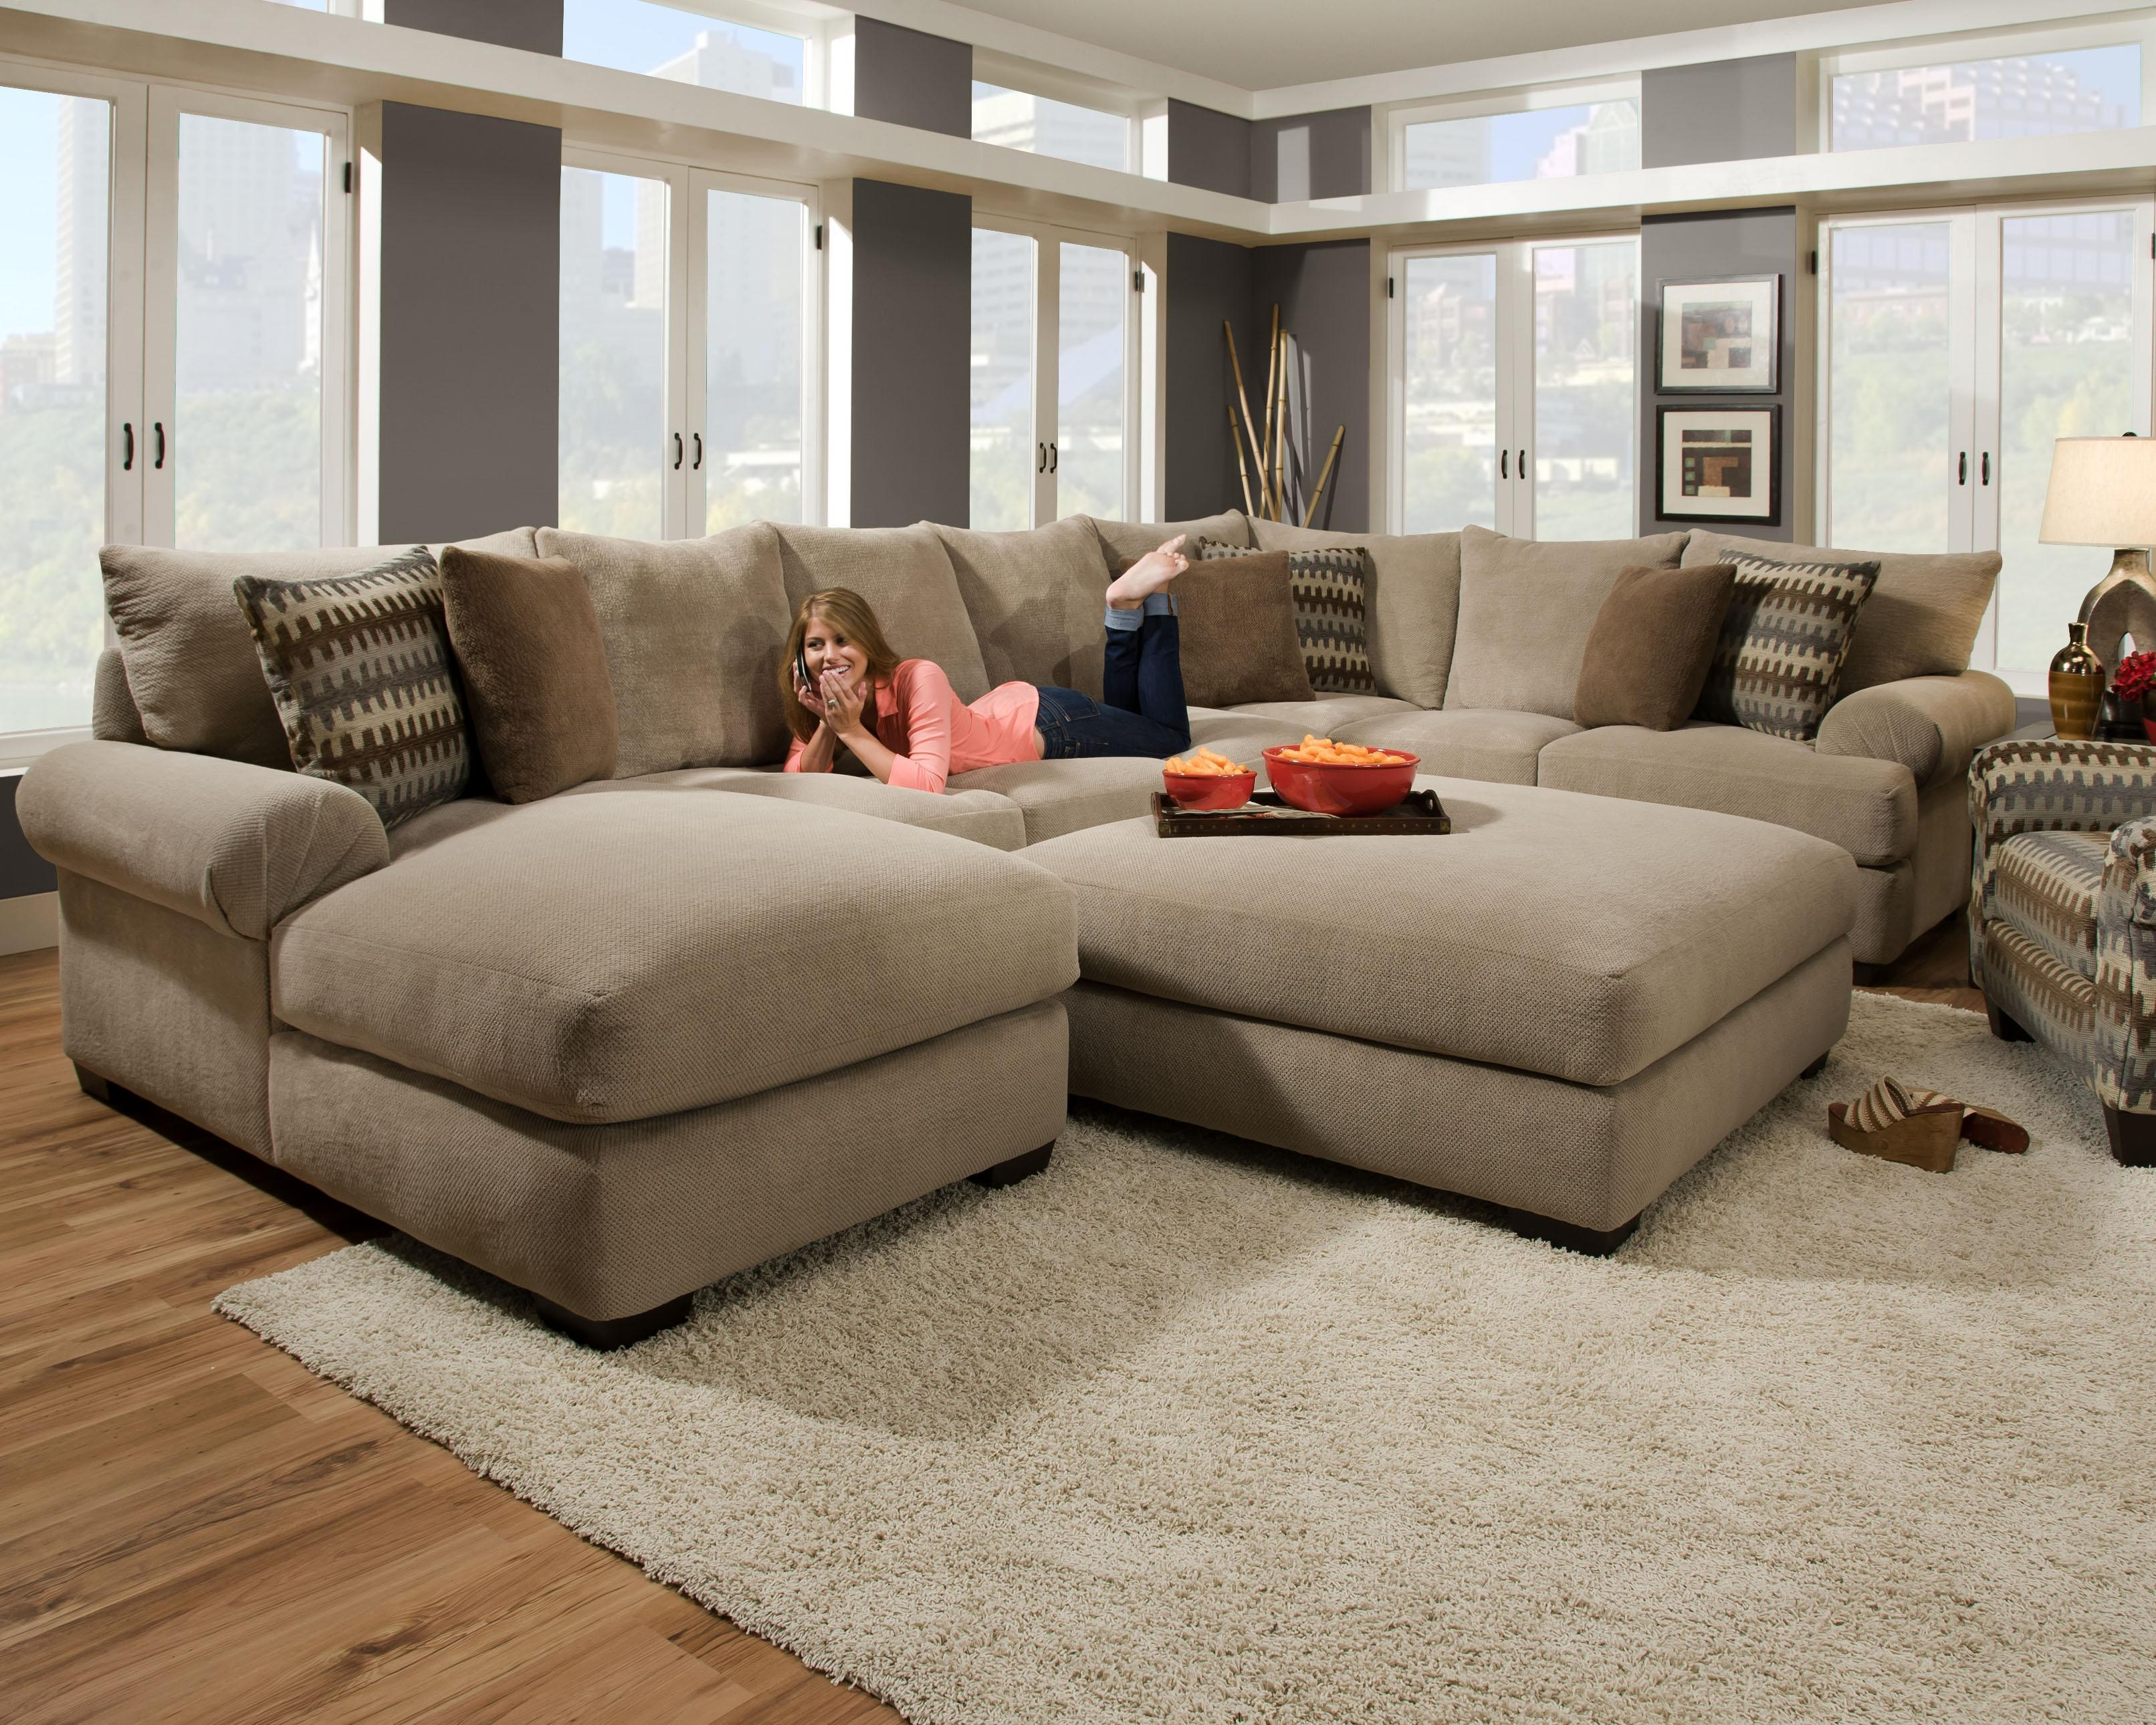 Ashley Furniture Sectional Couches (View 15 of 20)